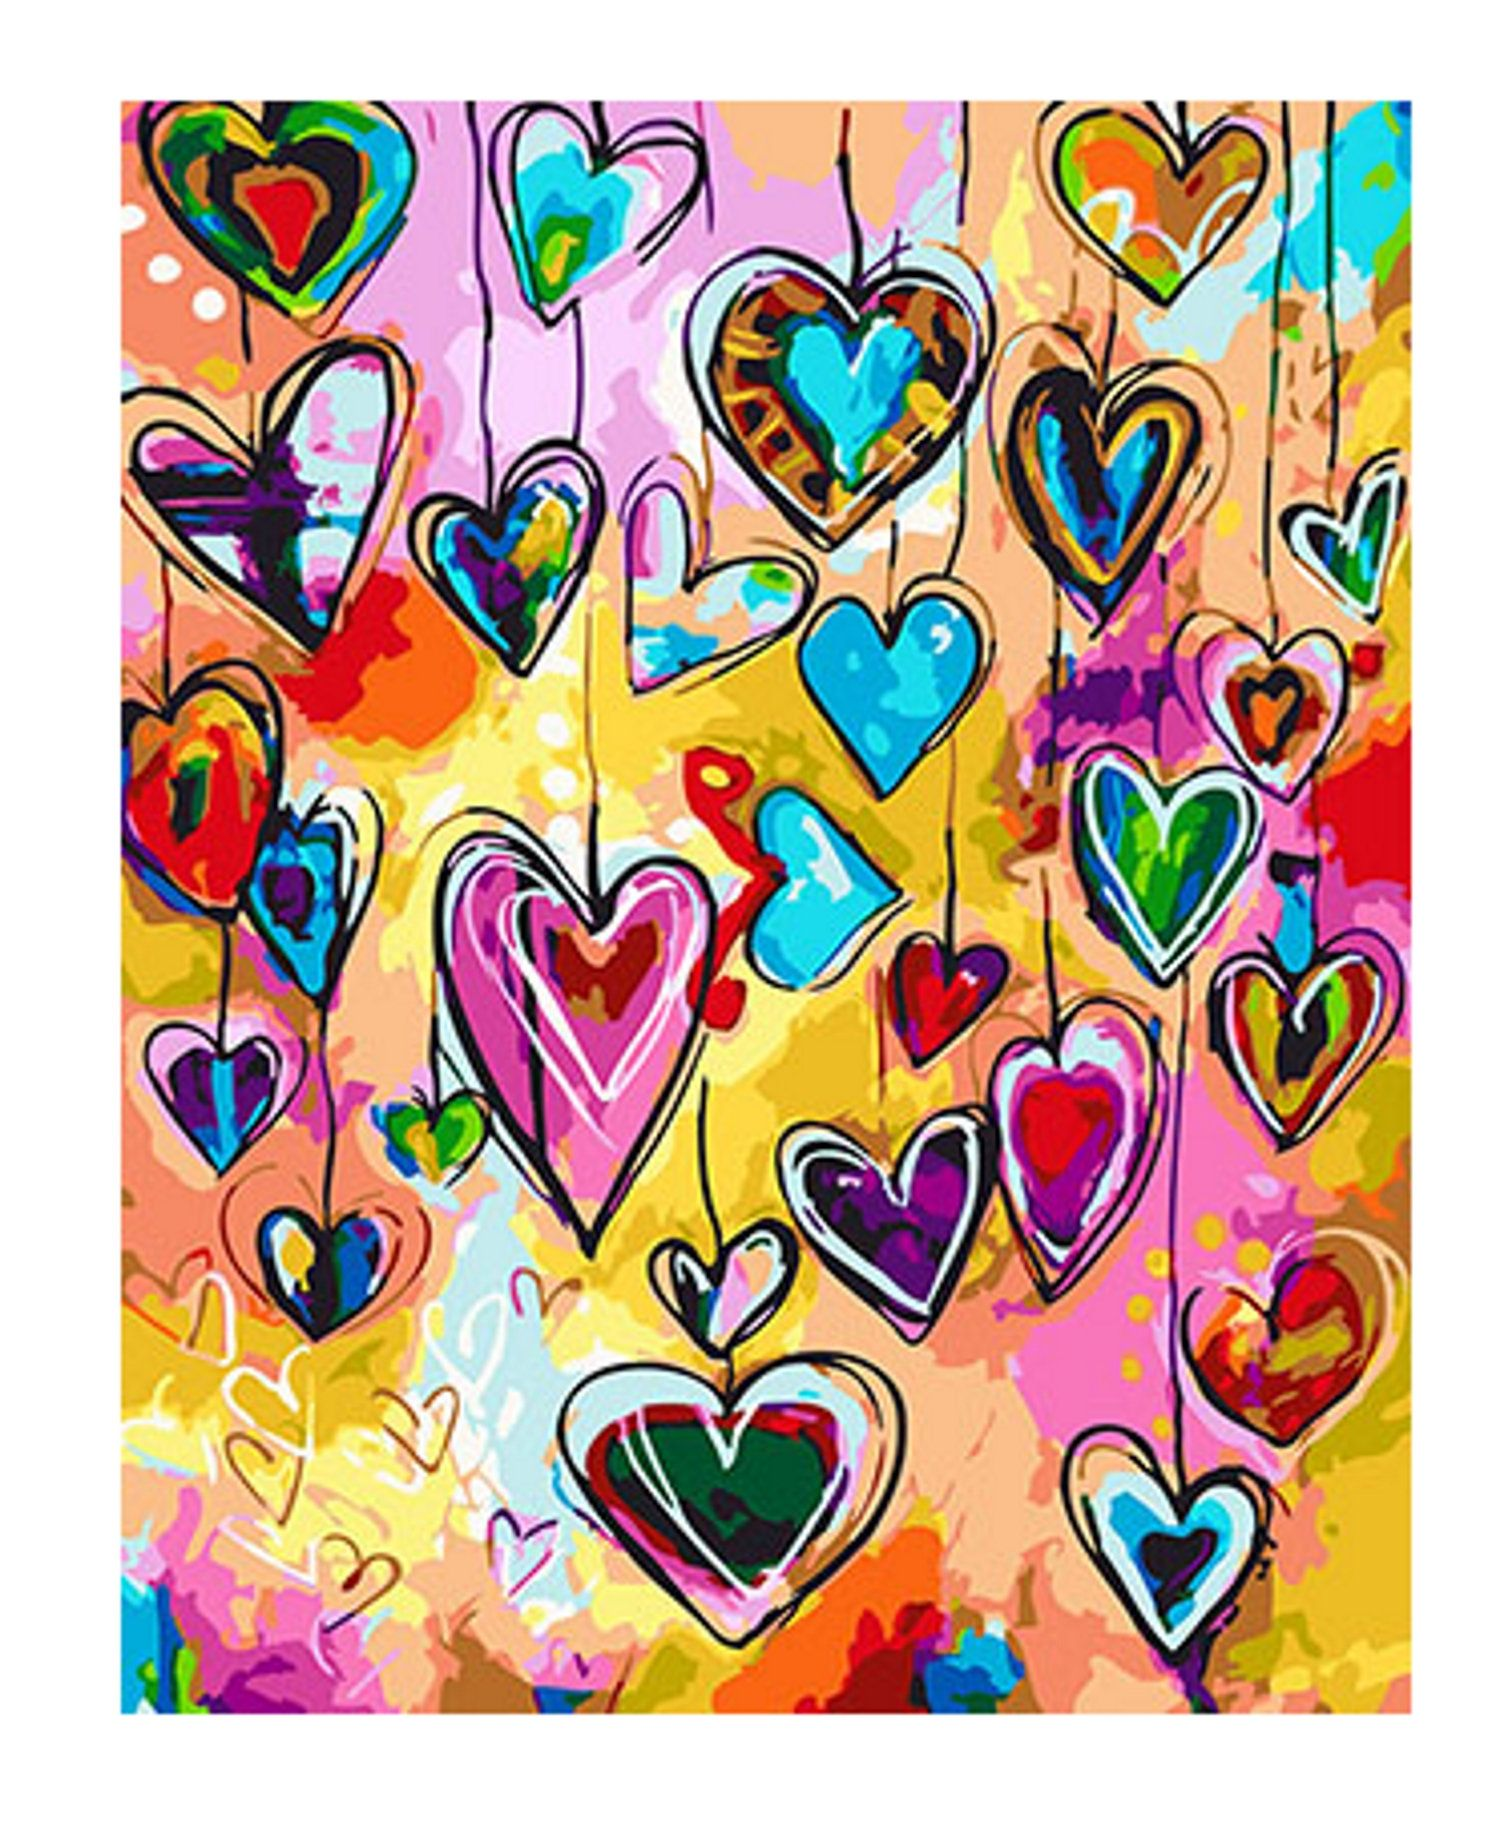 Heart Paint by Number Kit, Happy Heart Colorful DIY Kit